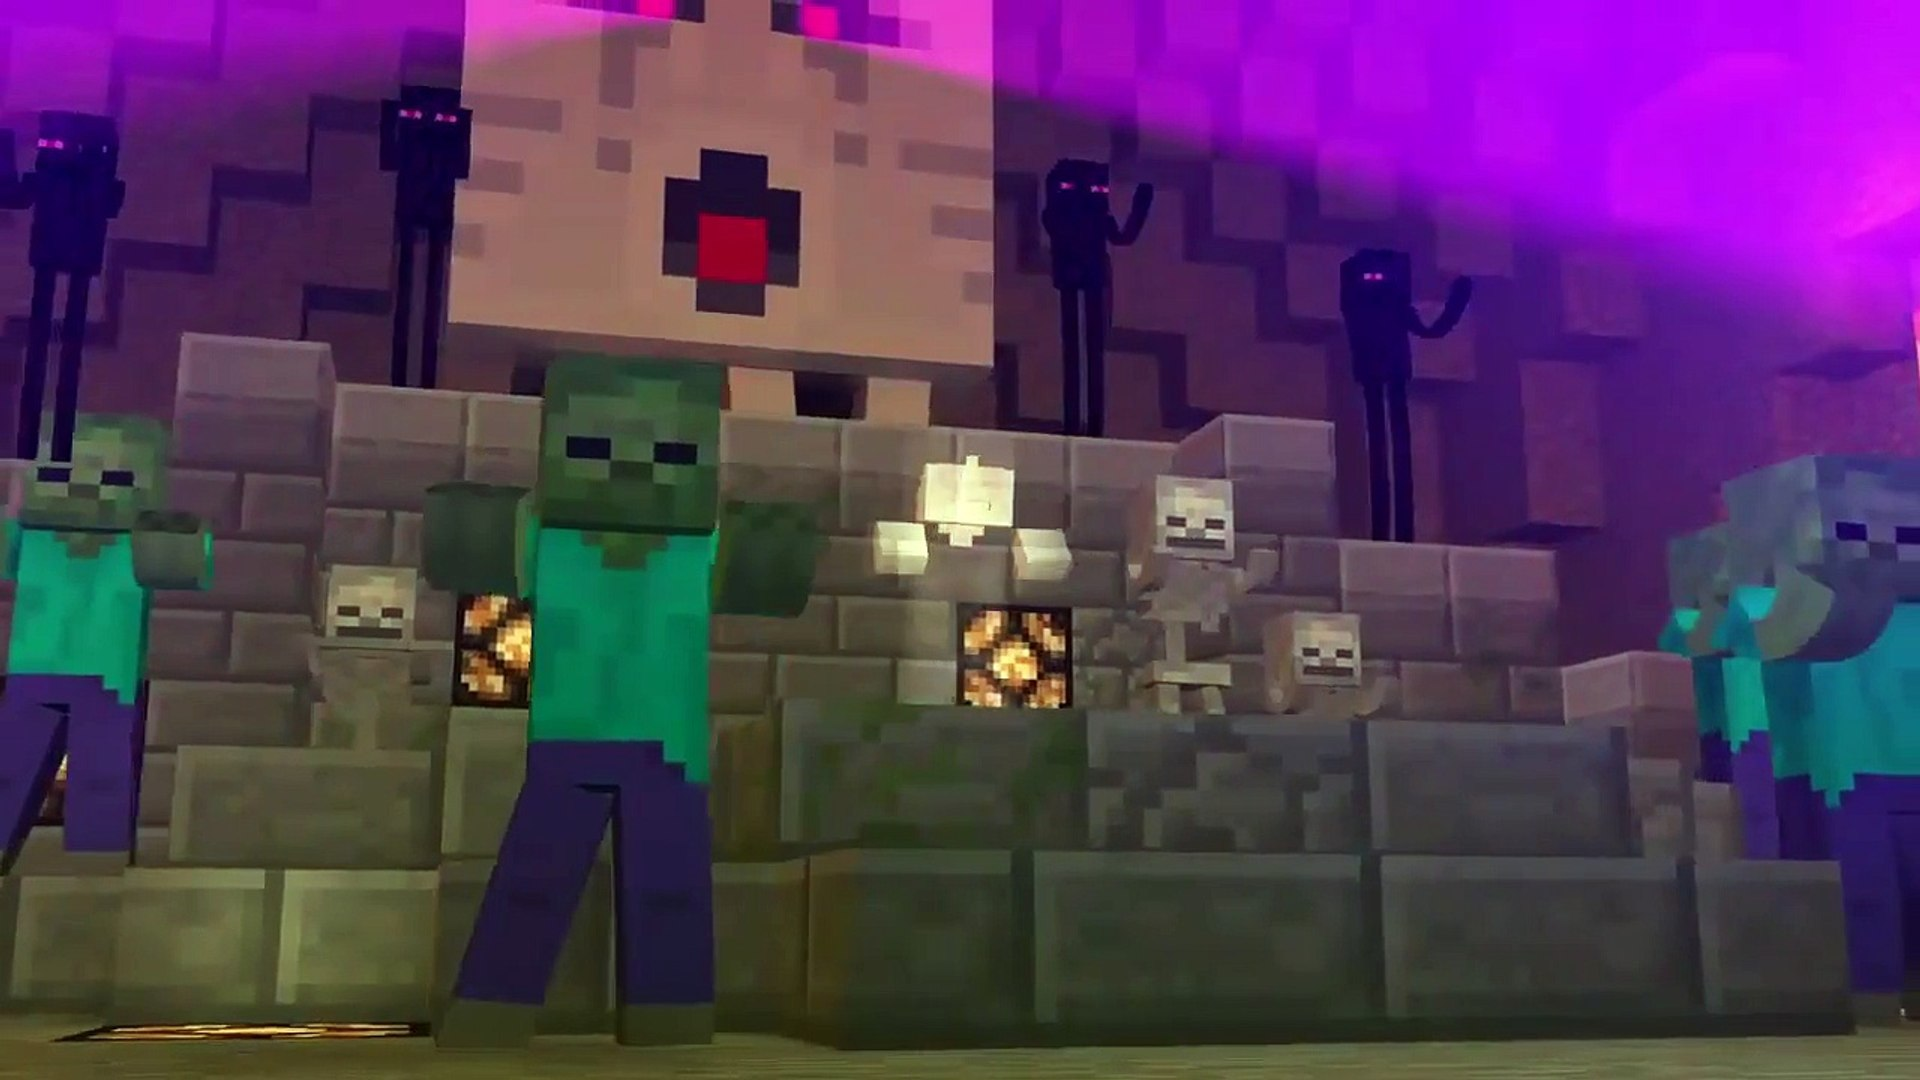 Top 5 minecraft parodies (song and animation)